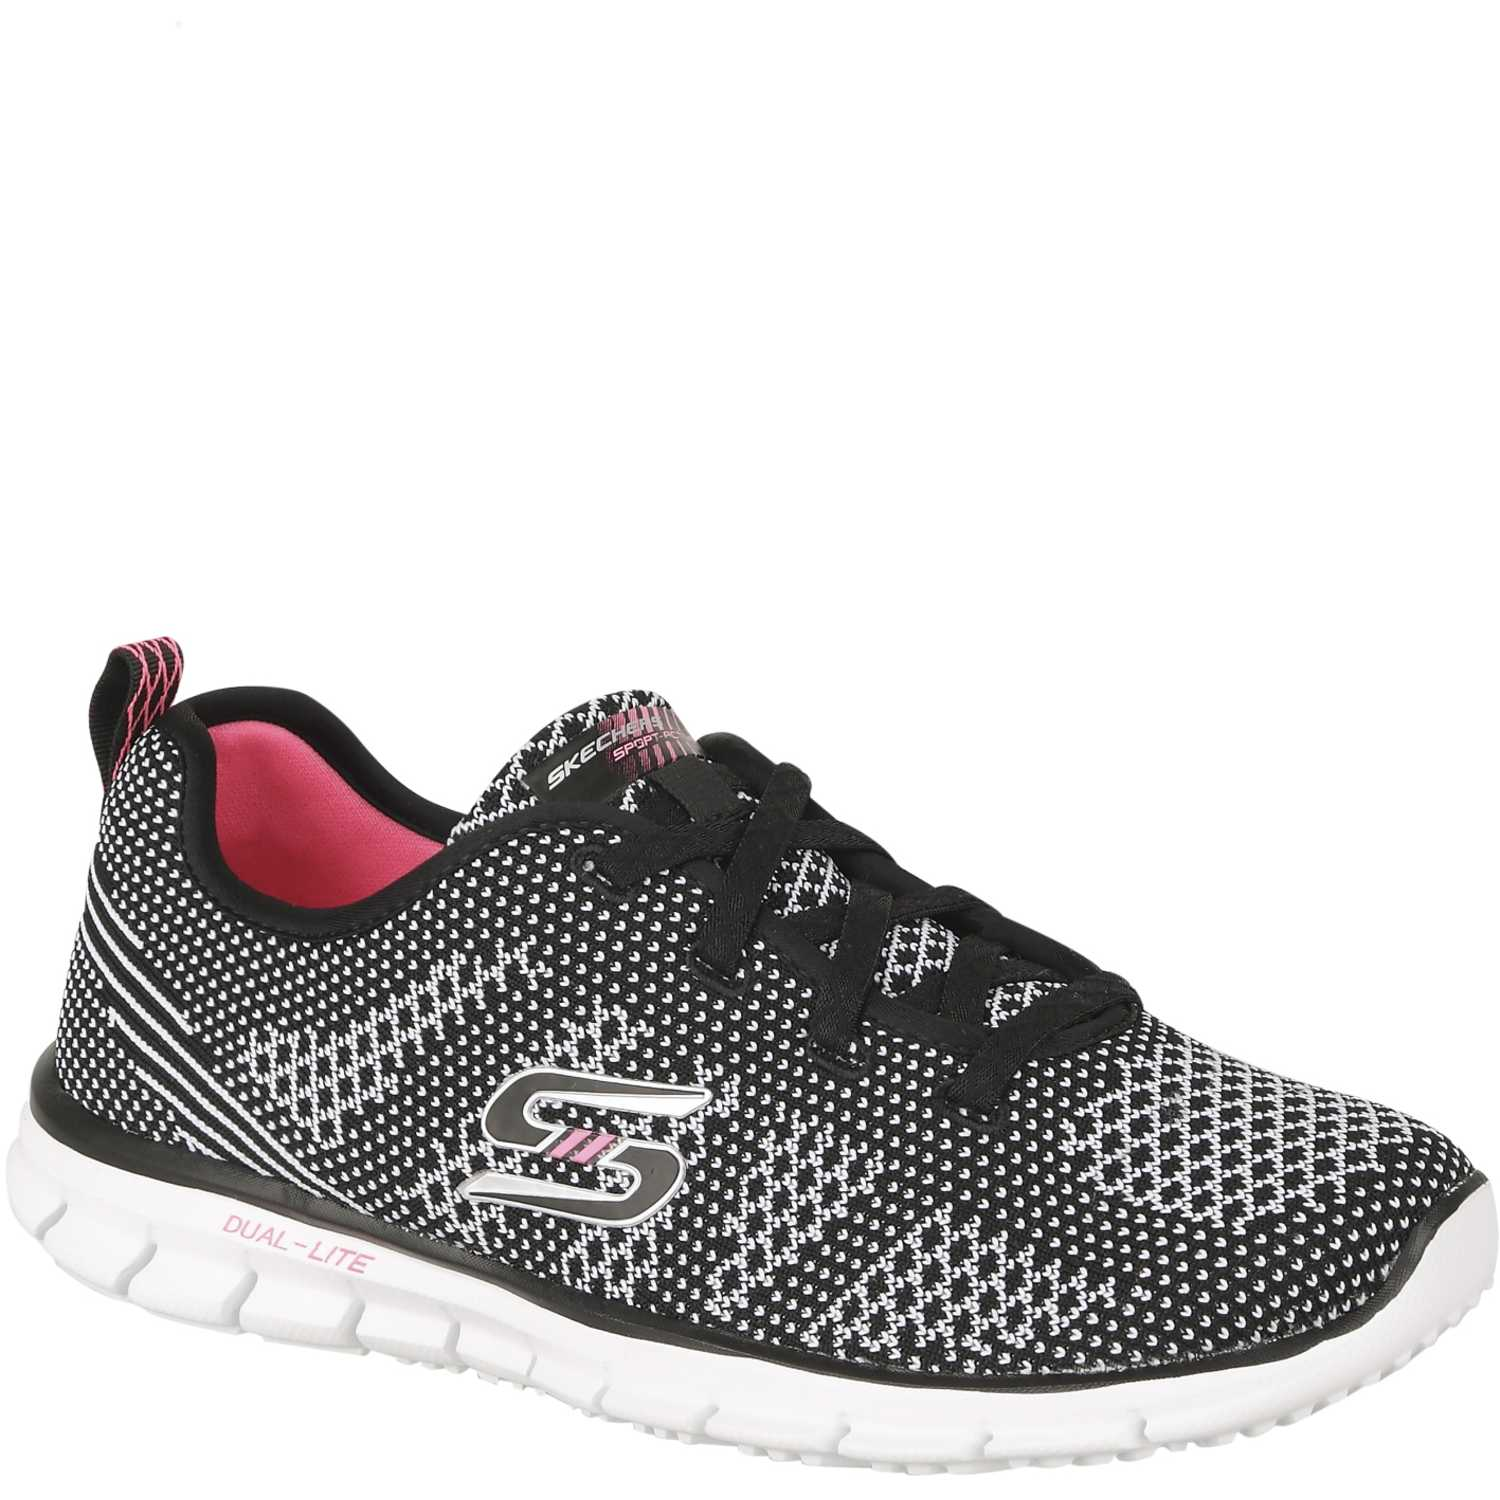 Zapatilla de Mujer Skechers Negro forever young 22880